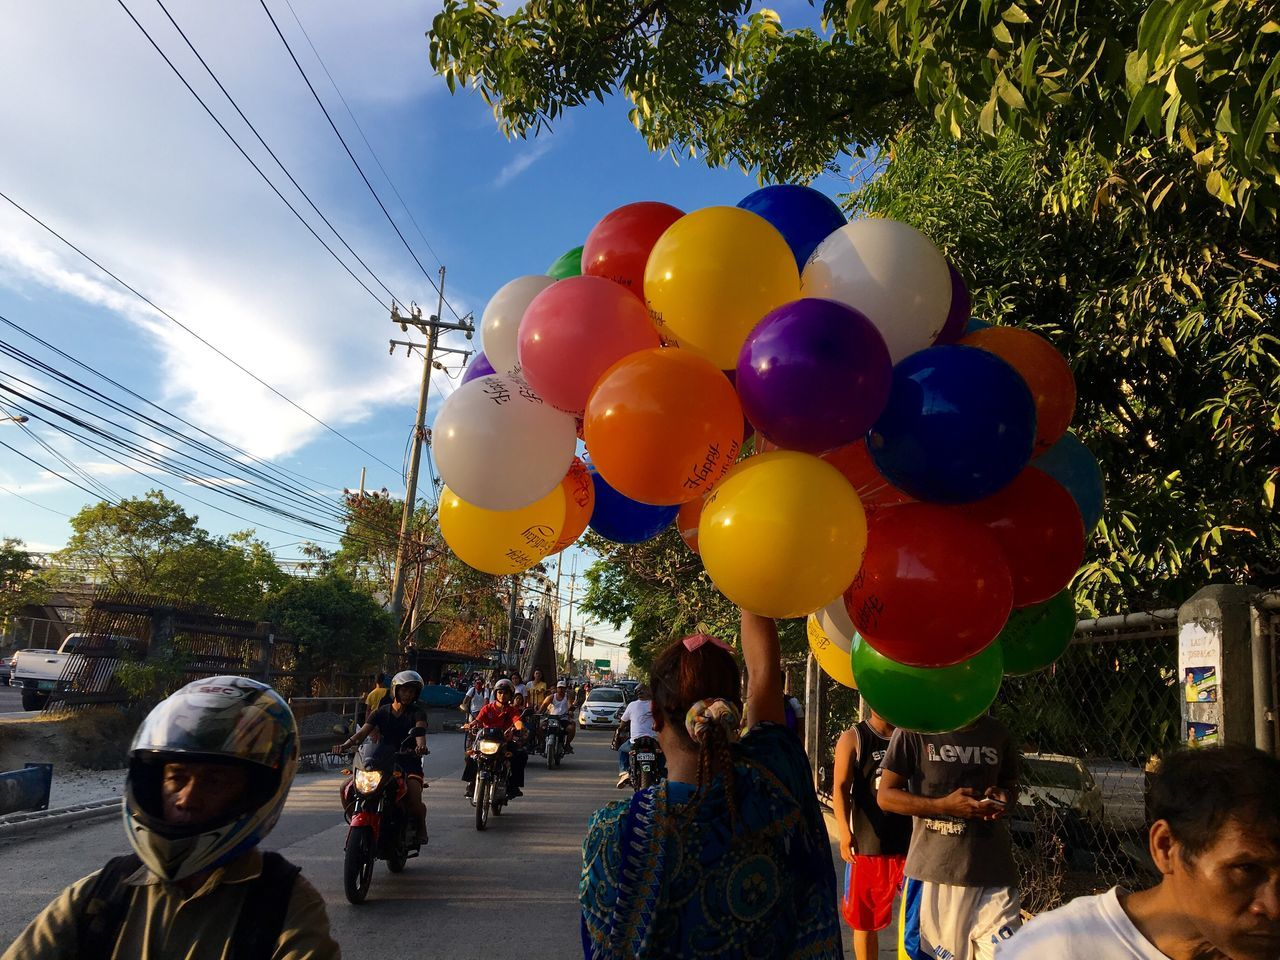 """A woman, holding """"Happy Birthday"""" balloons, walks past motorists and passers-by along a busy street in Taguig, Philippines. Balloons Happy Birthday Street Photography Motorcycles Motorcyclist Colourful Balloons Bestoftheday Color Photography Color Shapes Colour Of Life"""